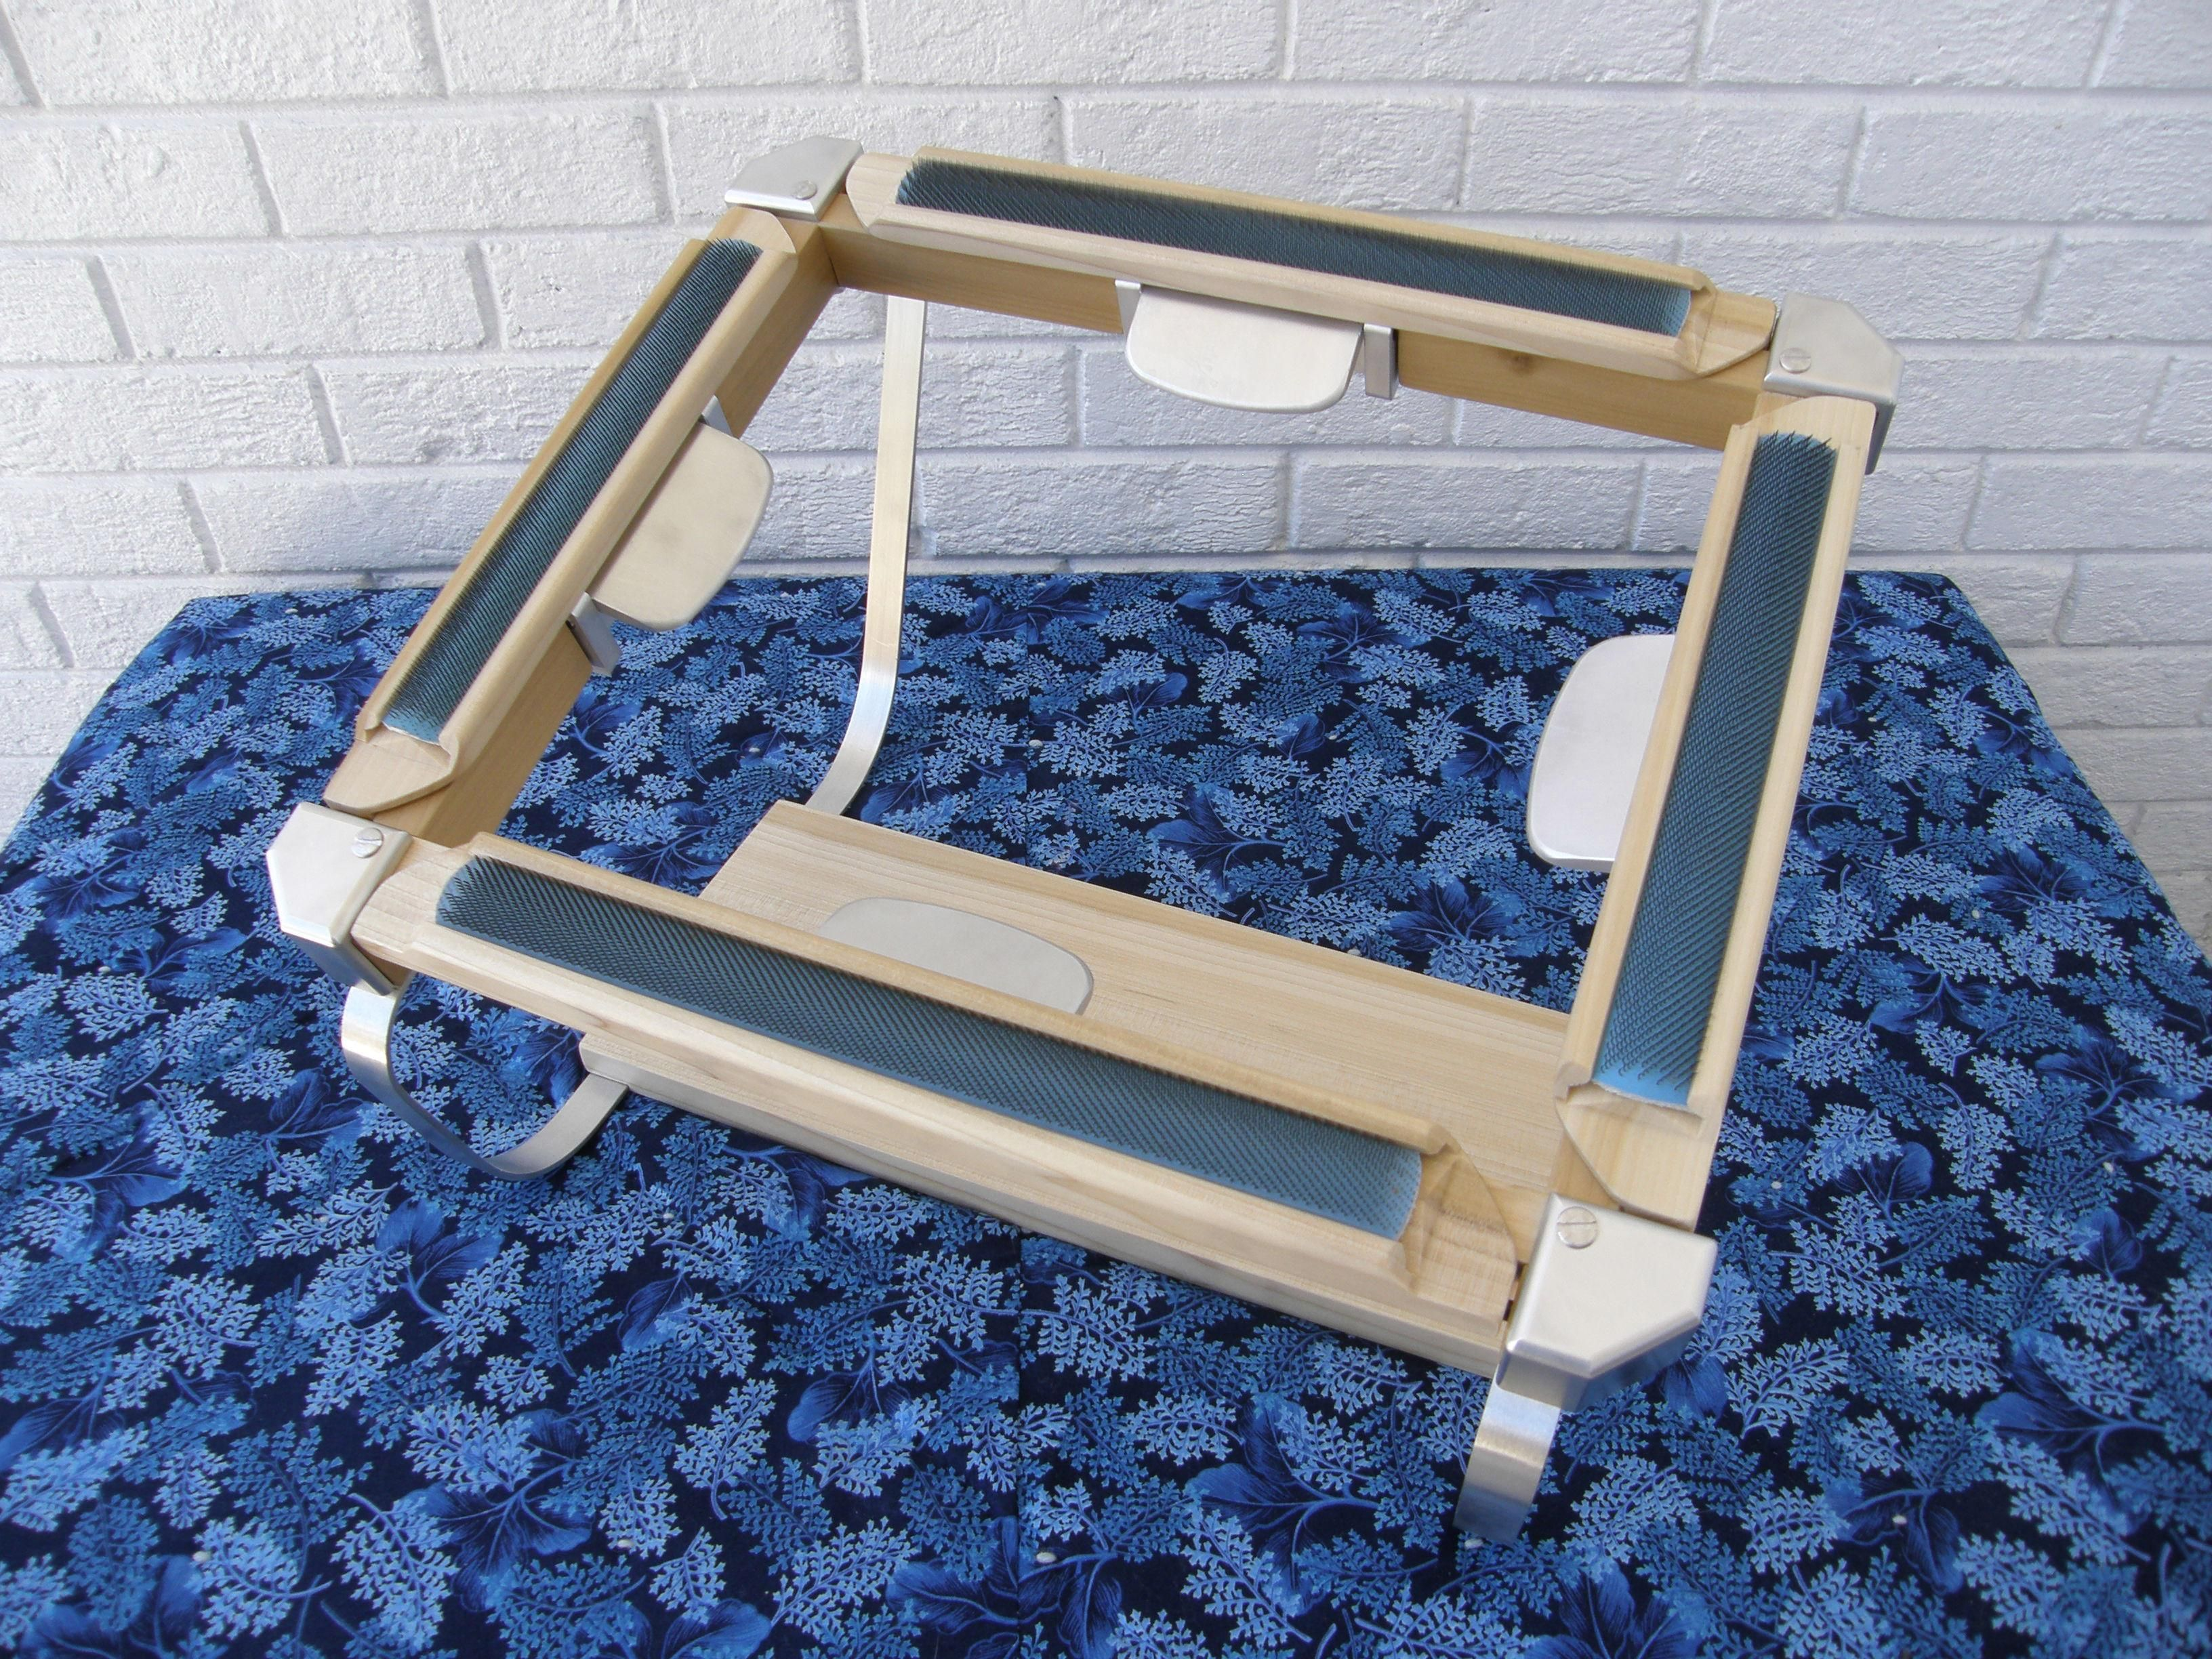 Snap Dragon Huggable Frame Pulls Backing Very Even And Cannot Feel Gripper